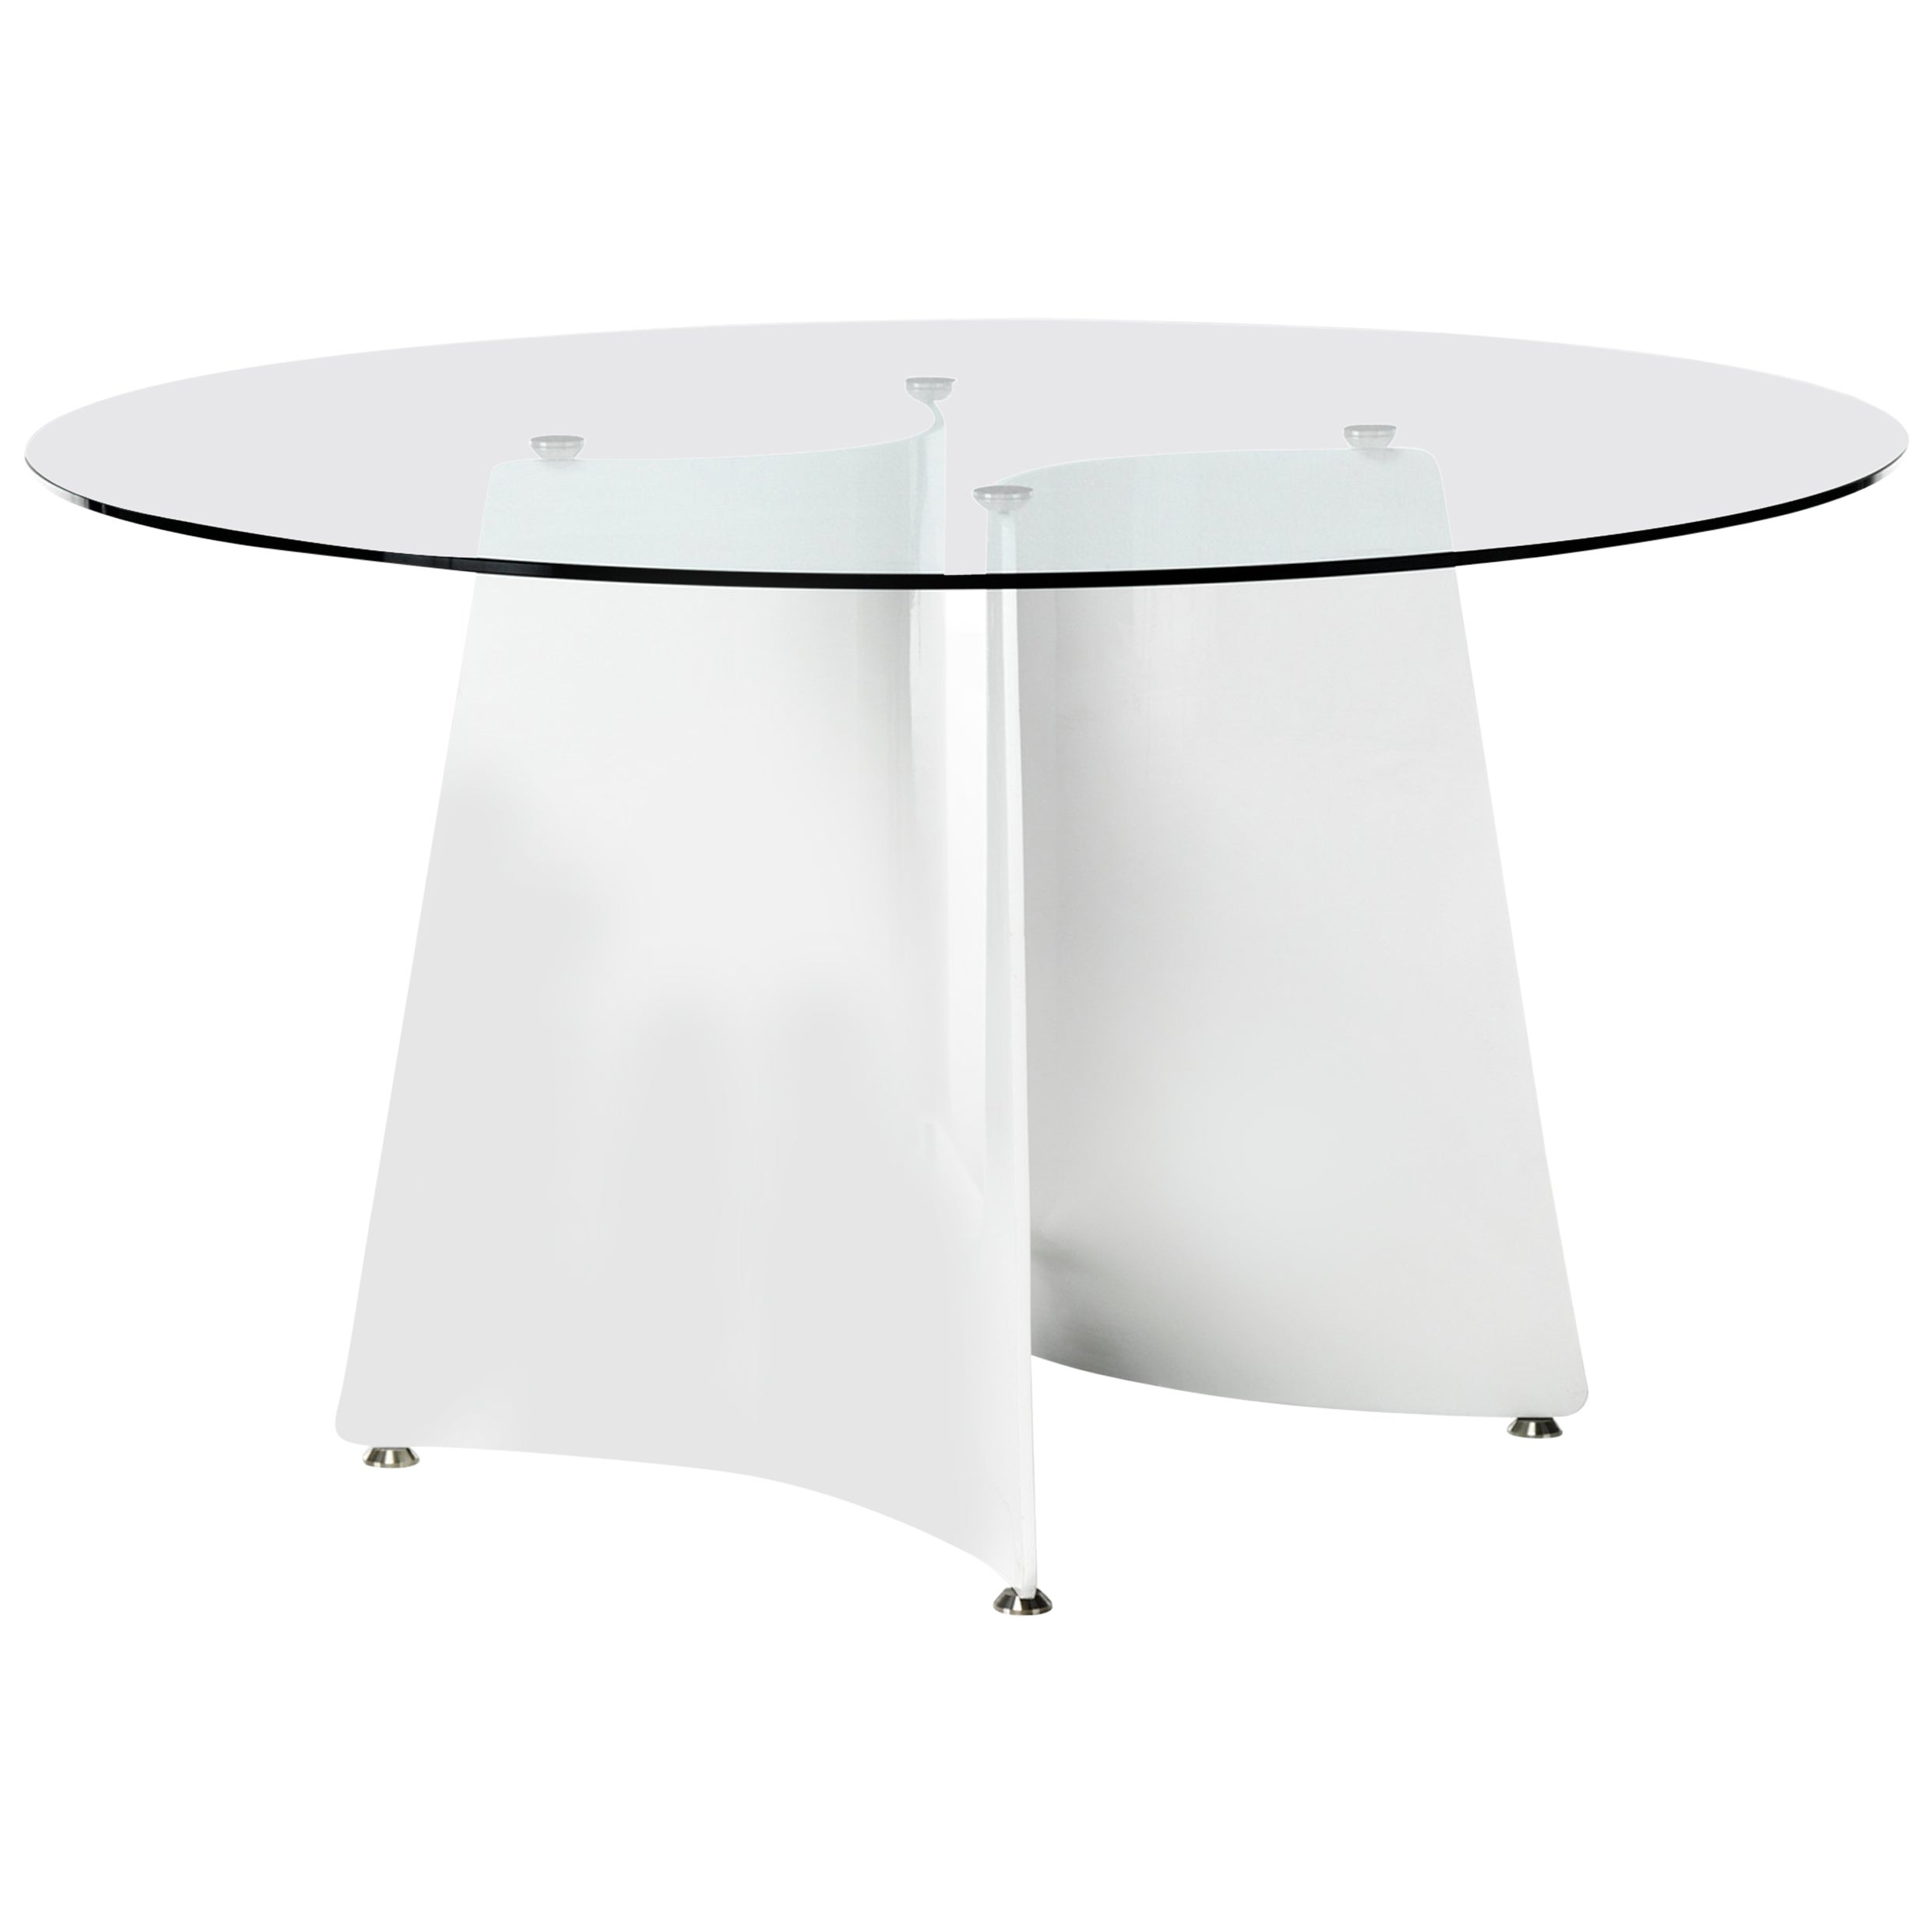 Baleri Italia Bentz High Round White Table with Glass Top by Jeff Miller